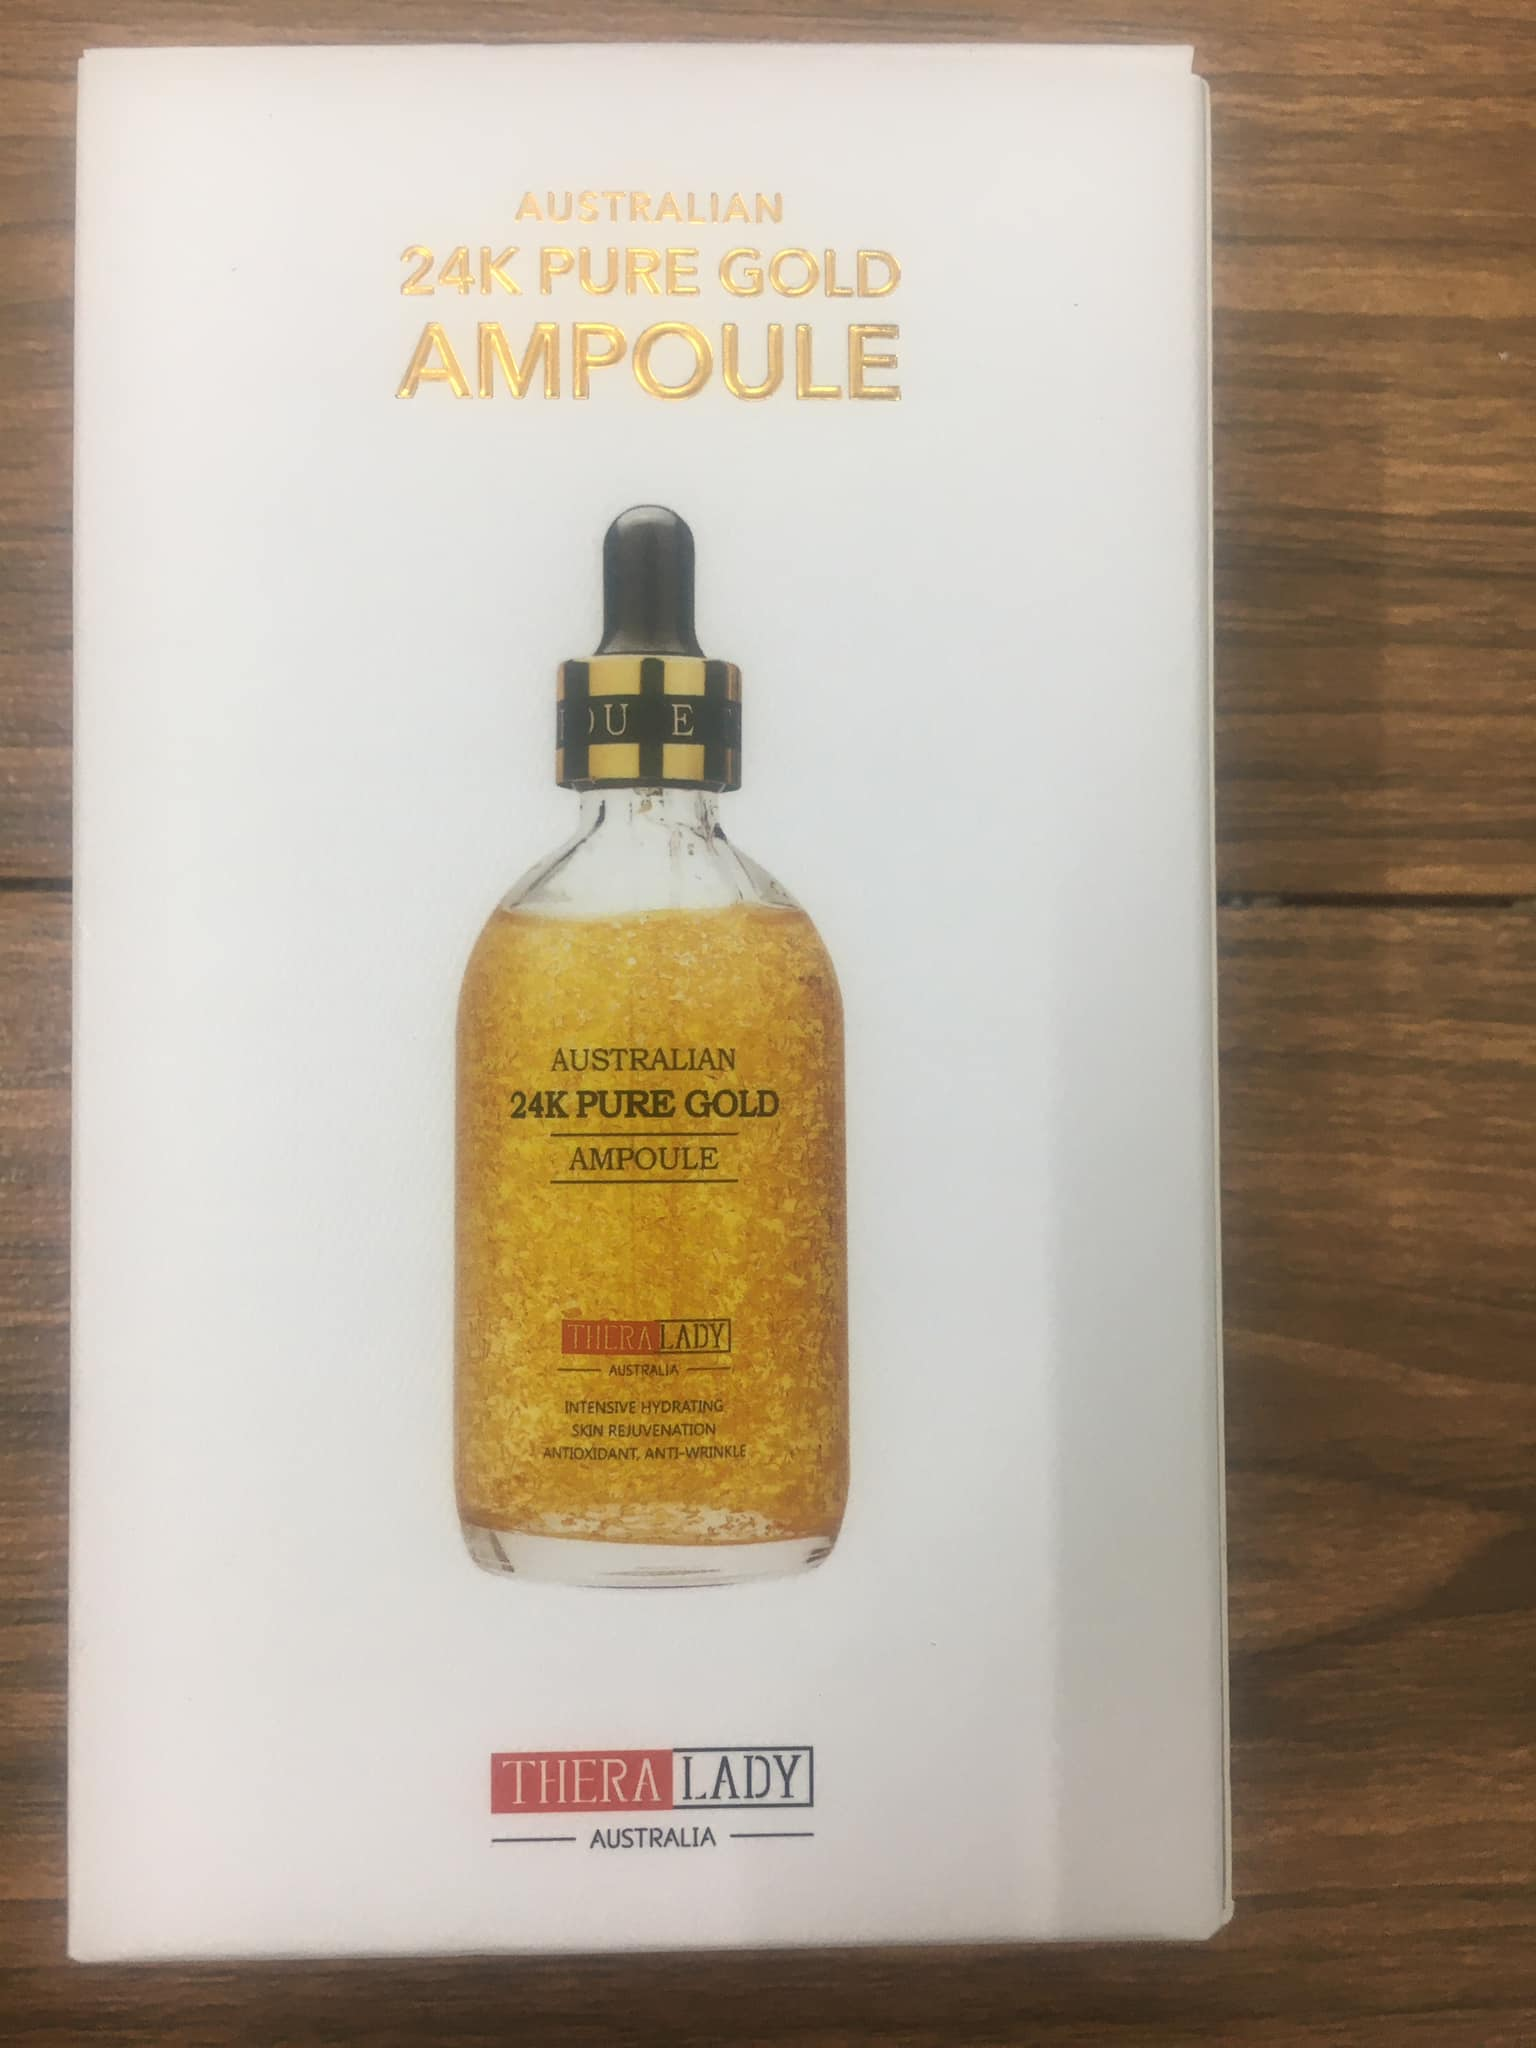 Serum Australia 24k Pure Gold Ampoule 100ml